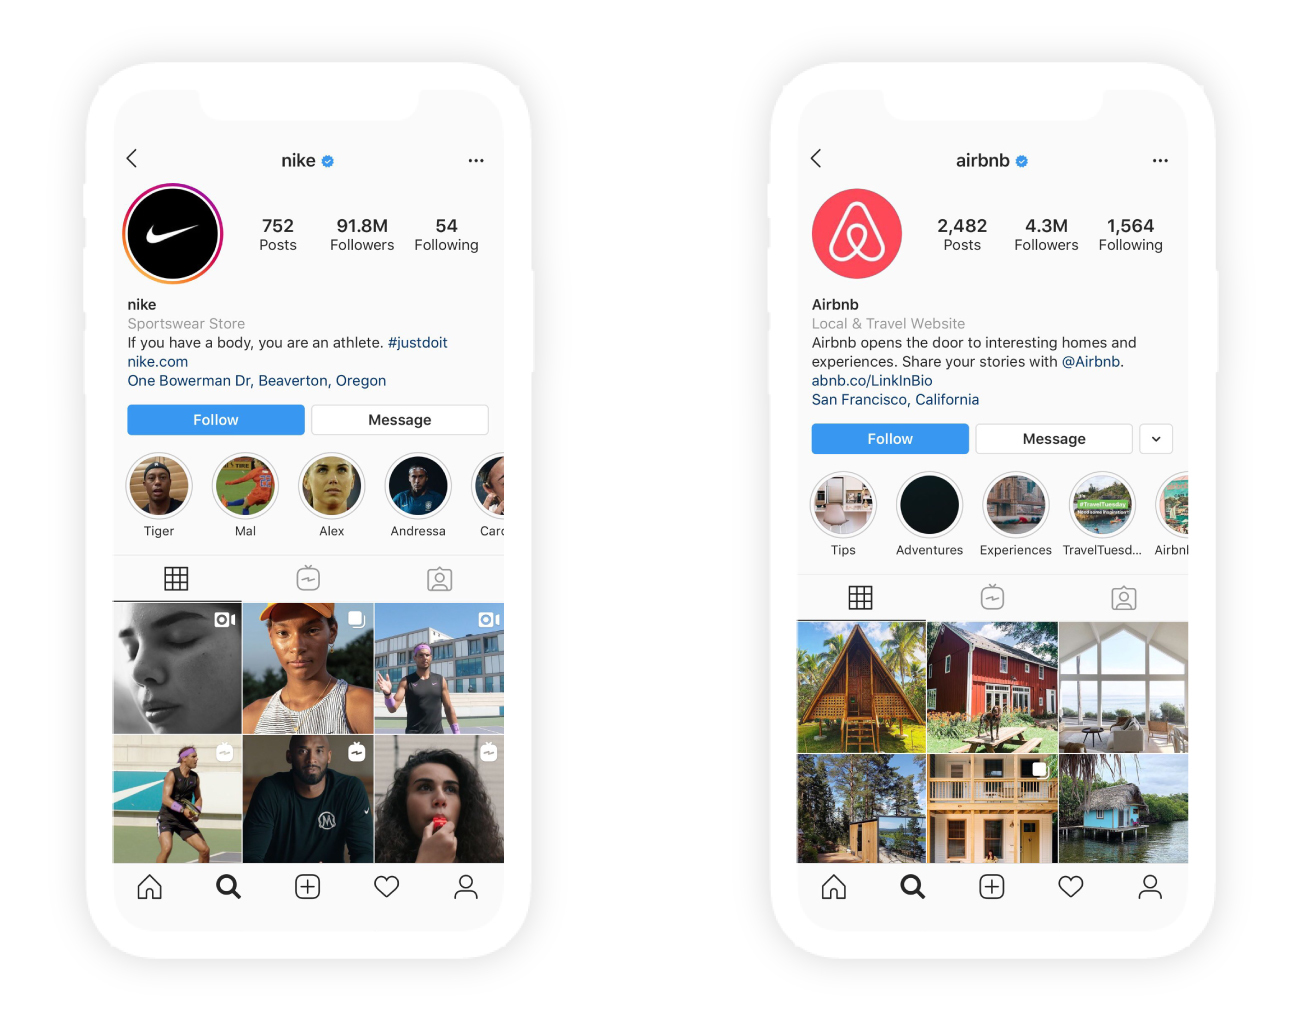 Airbnb and nike's Instagram pages